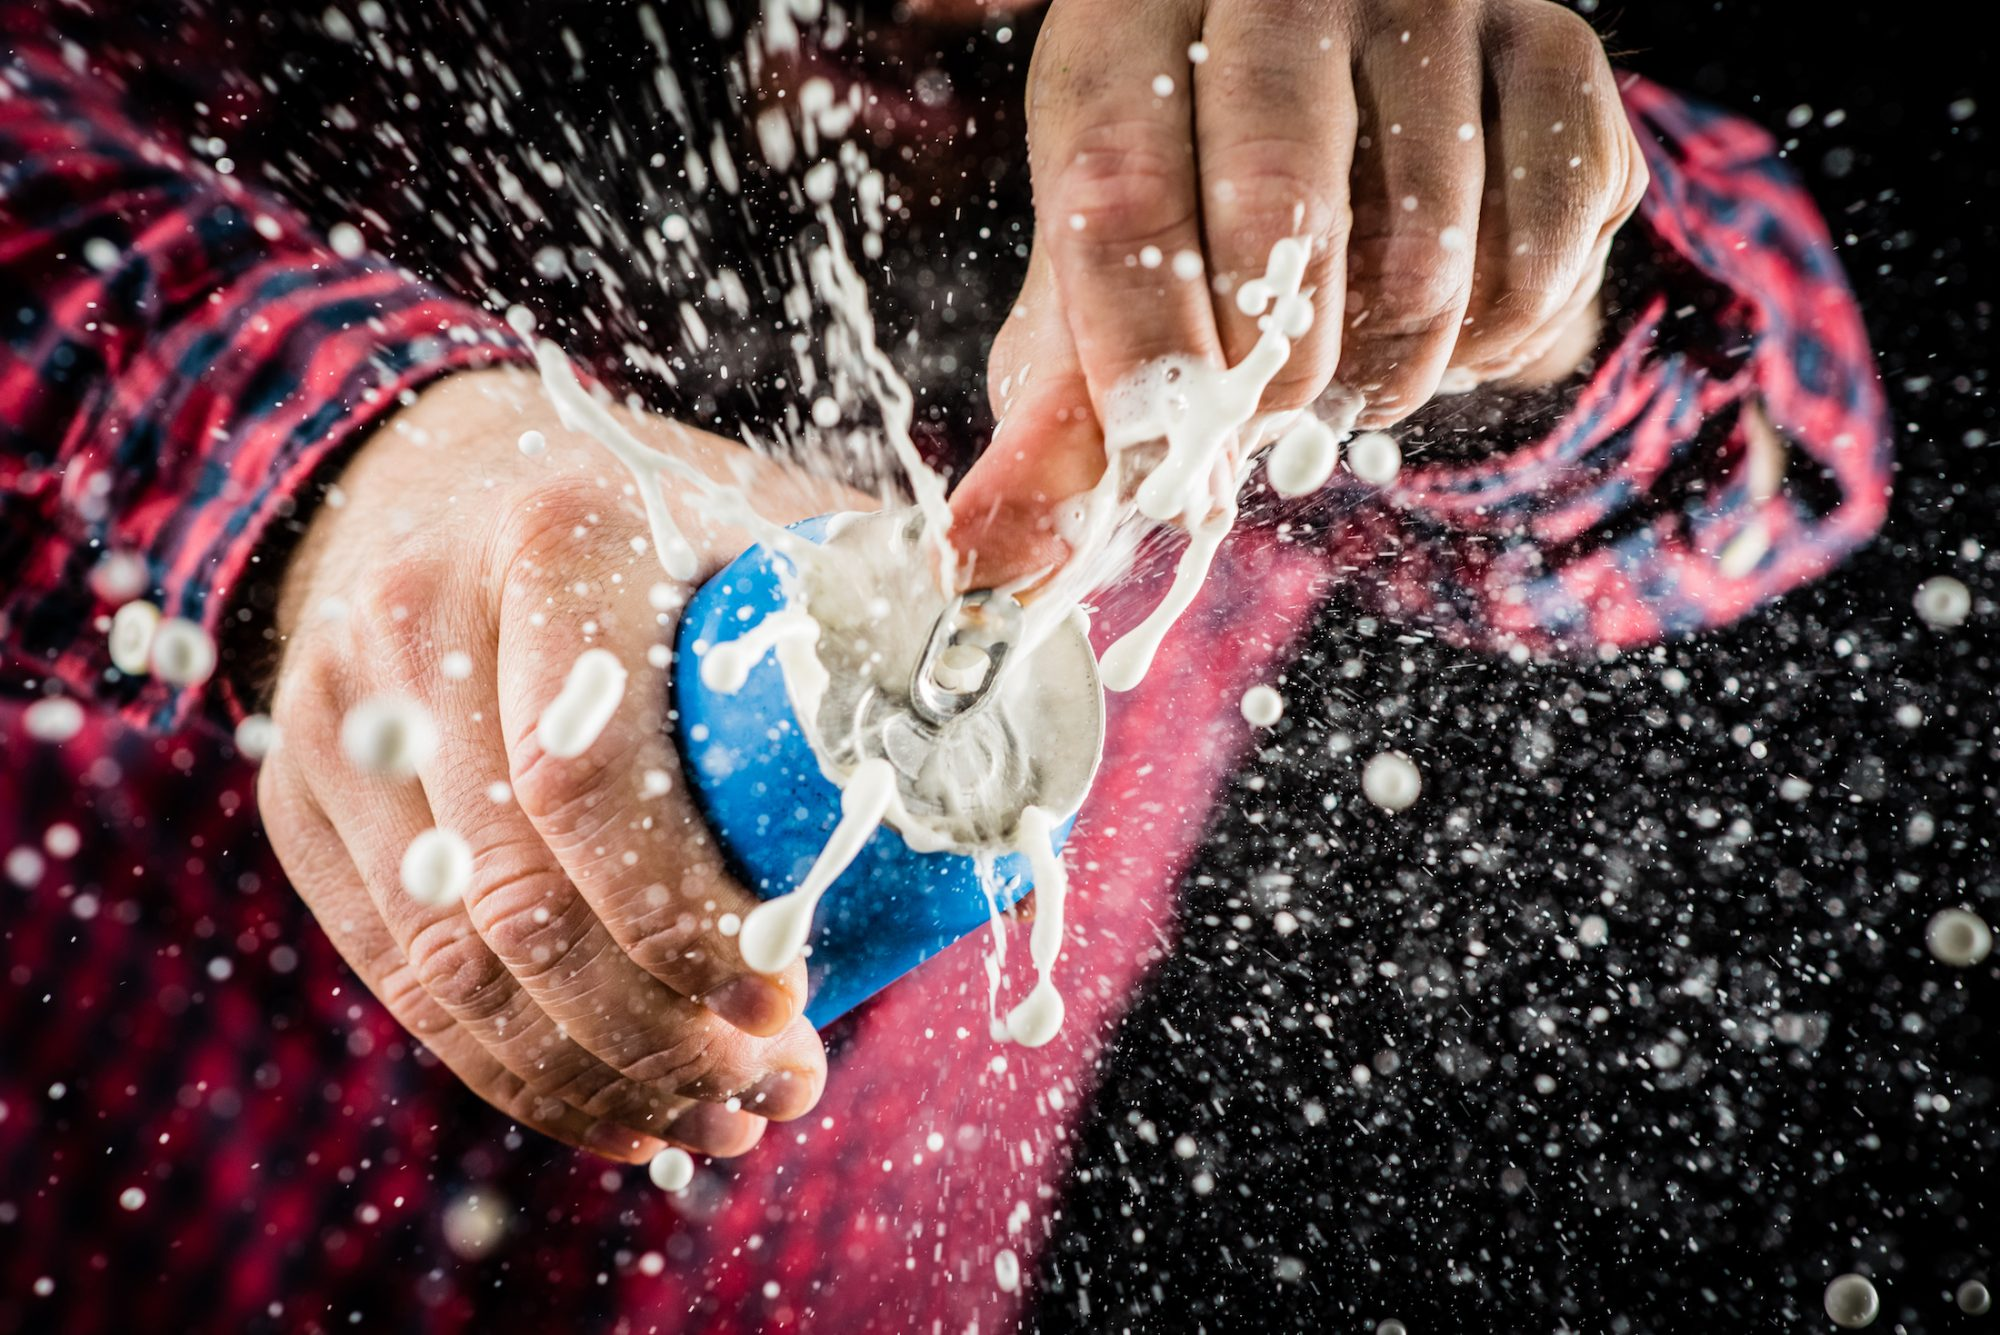 Does Tapping the Top of a Soda Really Preventing Spewing?